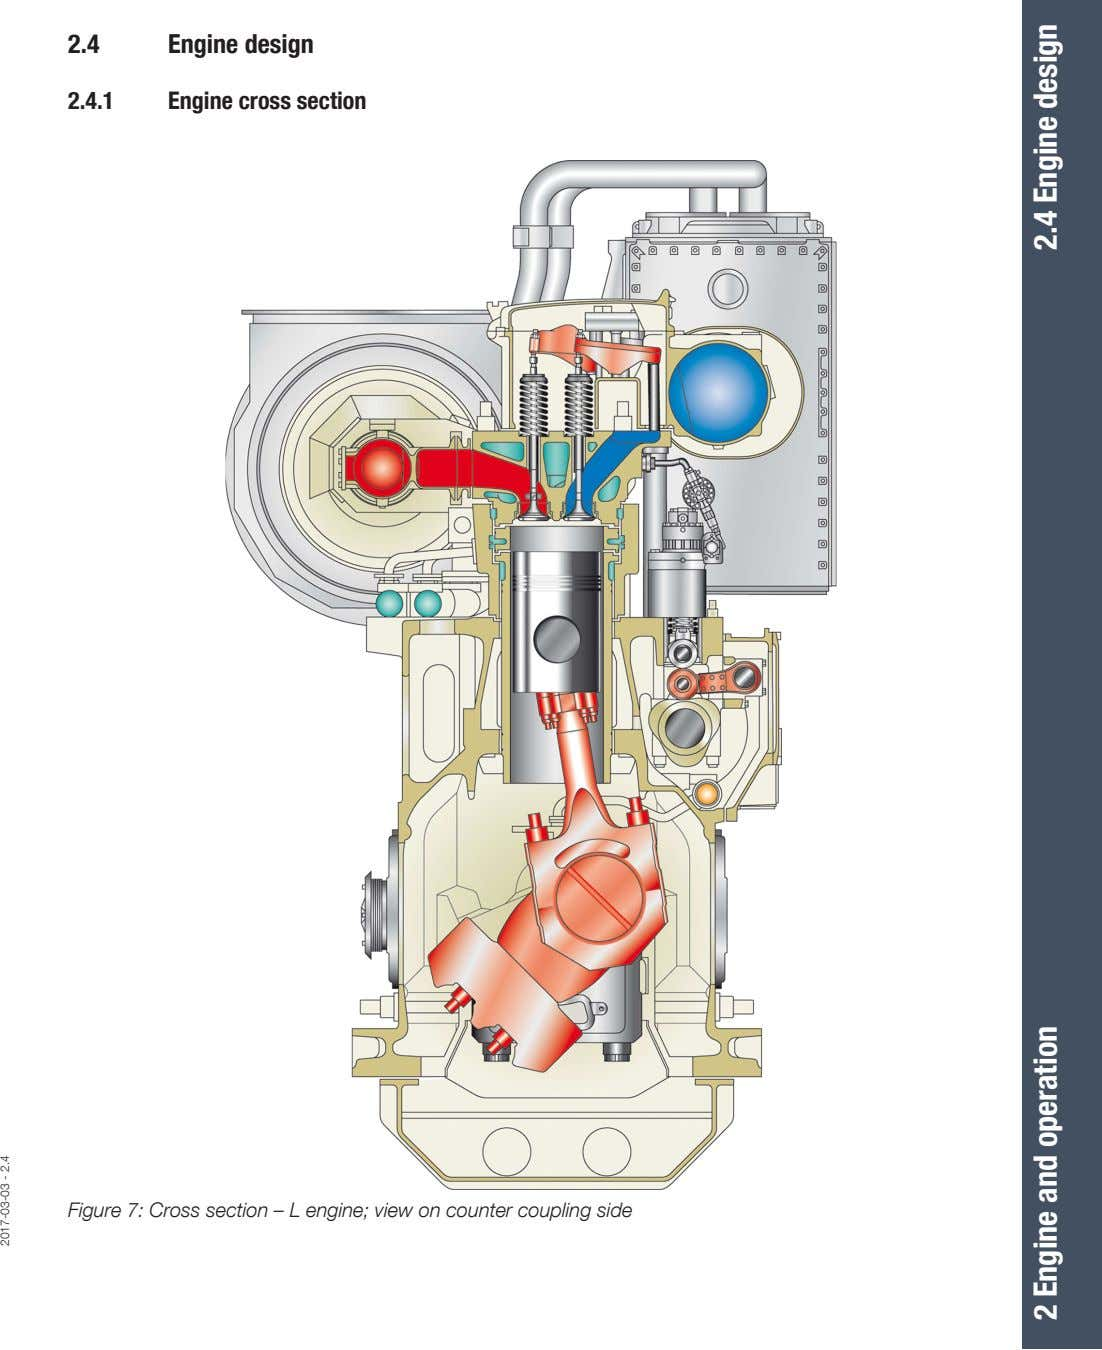 2.4 Engine design 2.4.1 Engine cross section Figure 7: Cross section – L engine; view